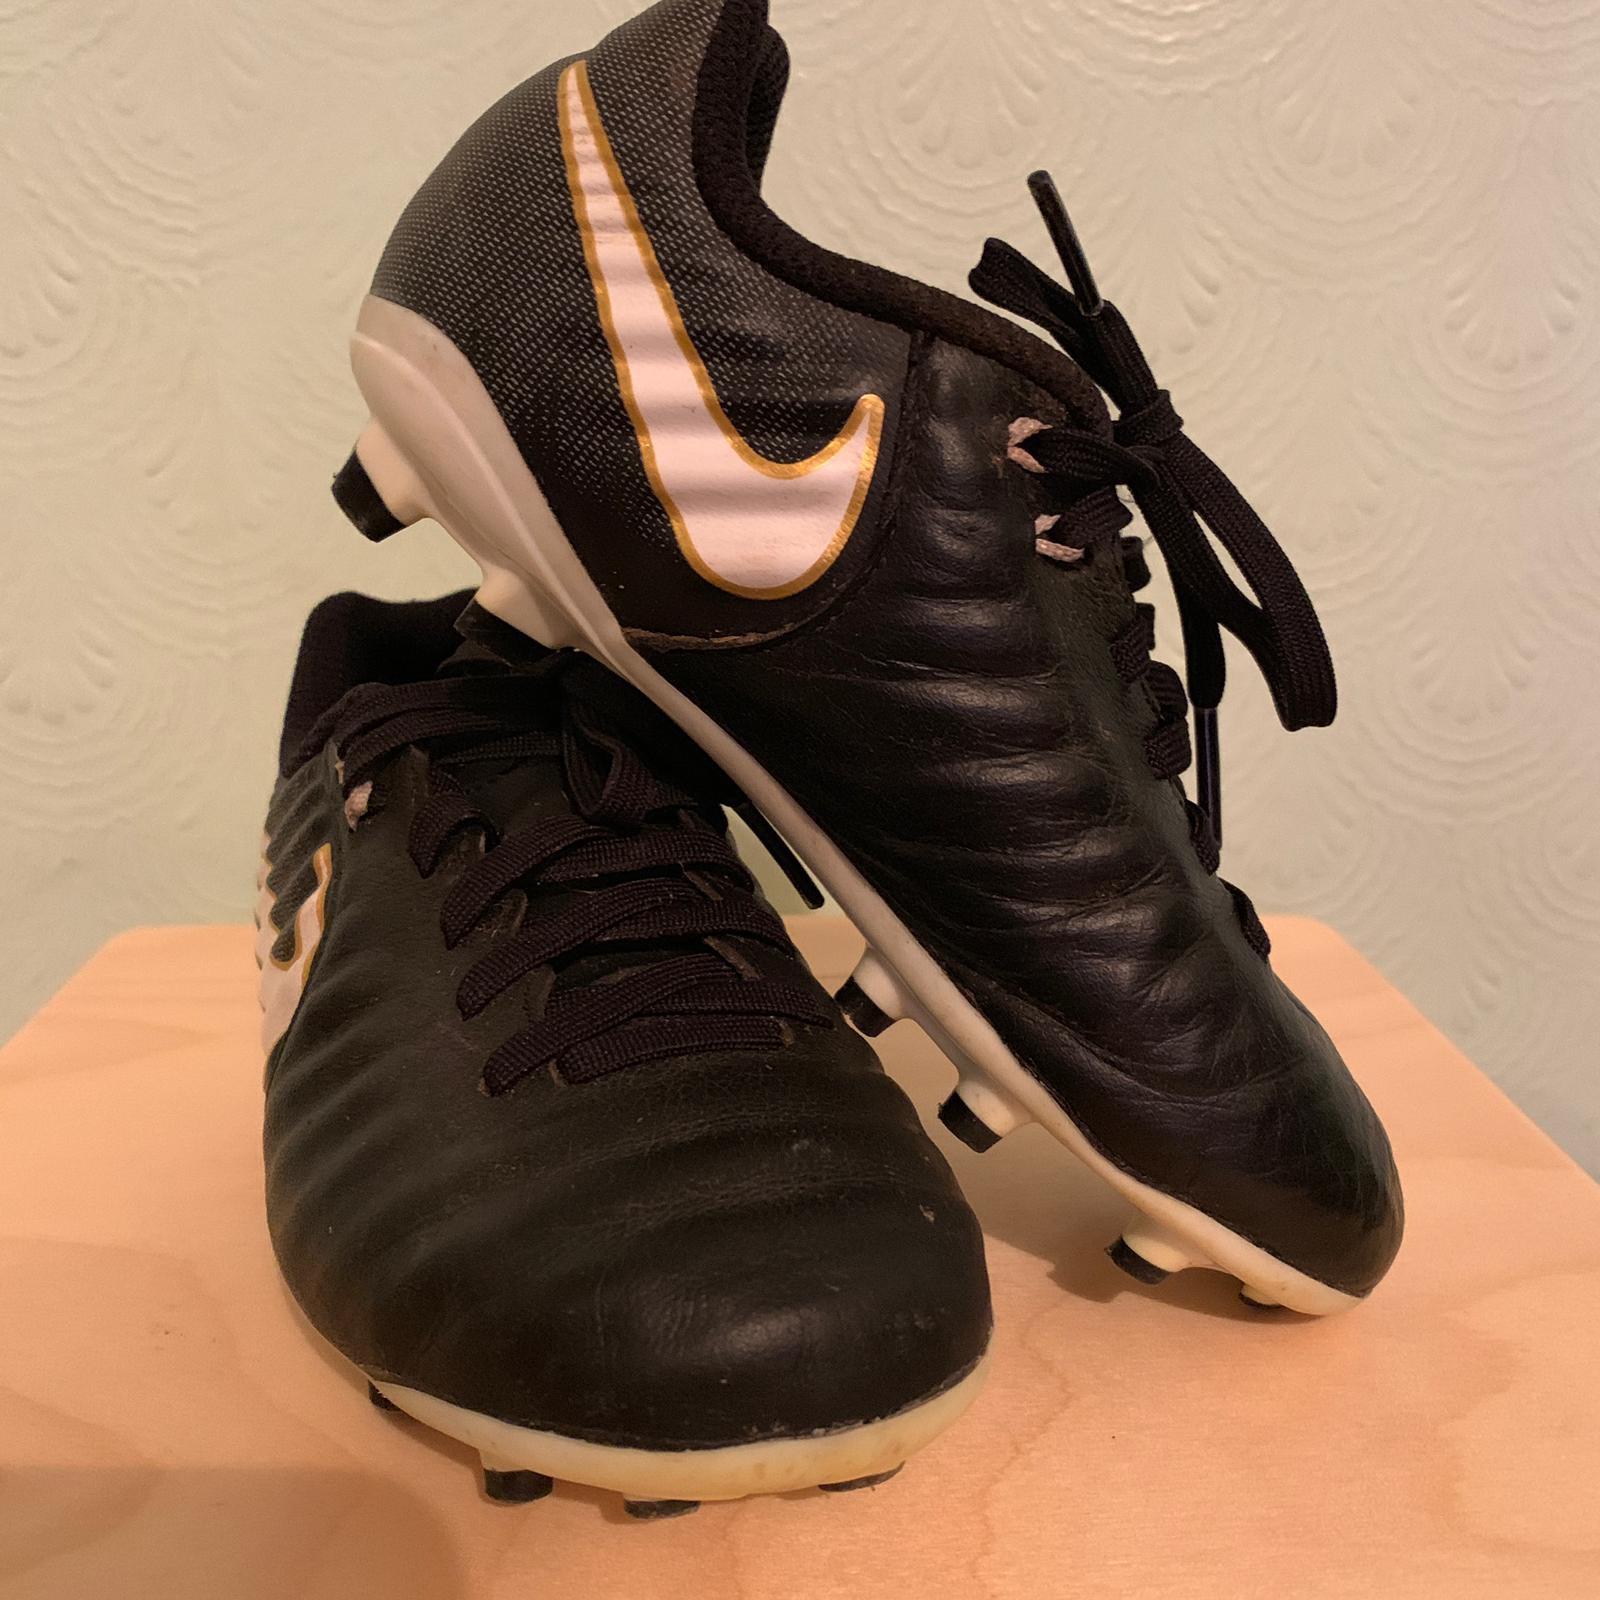 official photos ab4be c6d41 Nike Tiempo Football Boots Kids Size 11 UK Warn but... - Depop